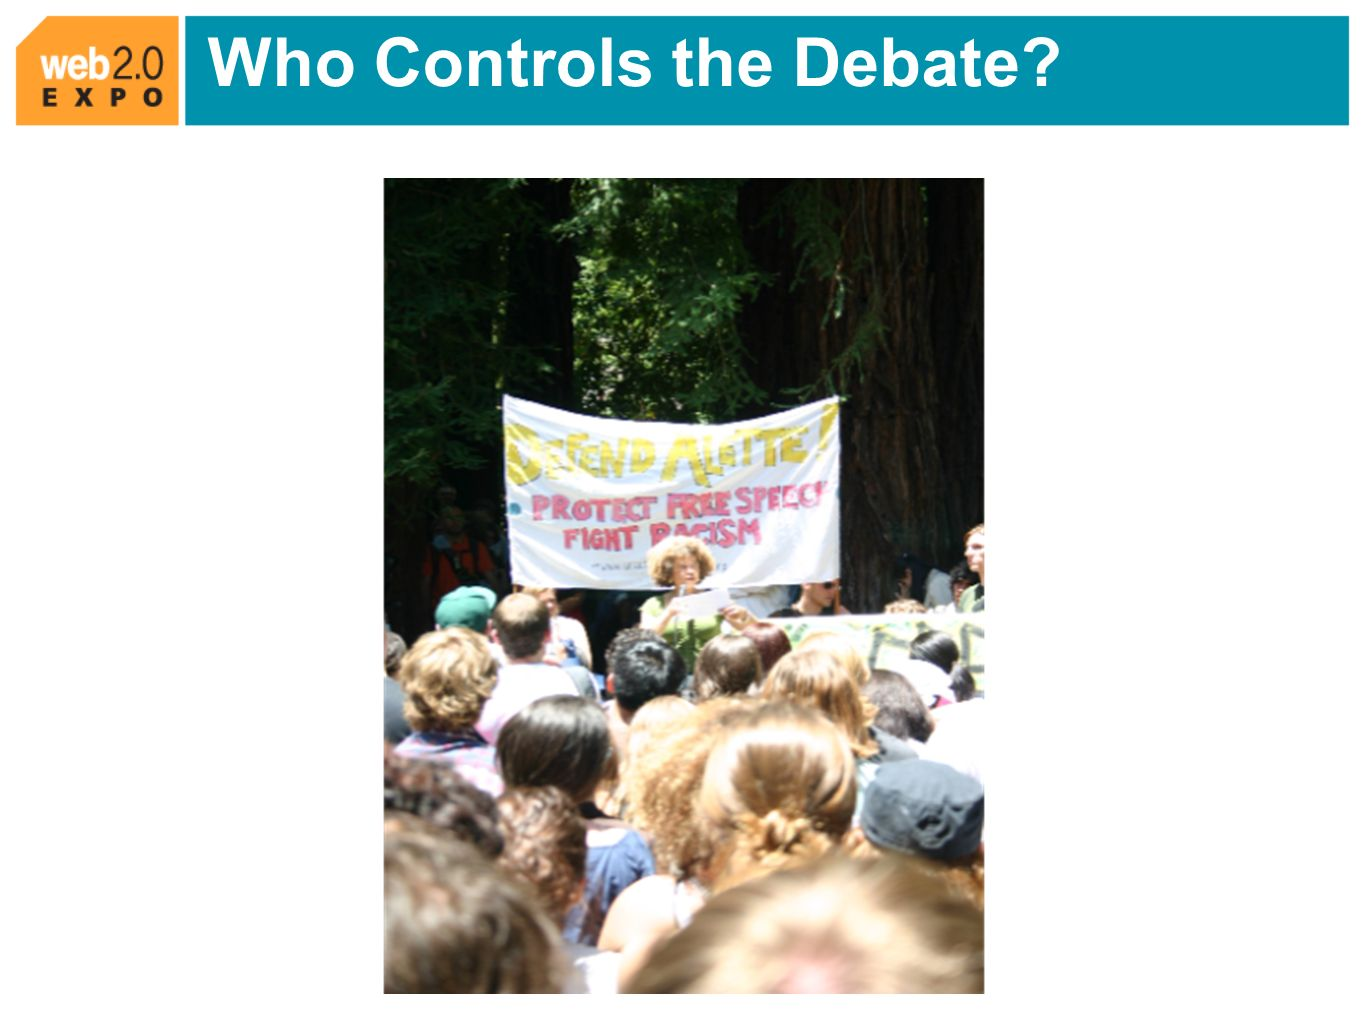 Who Controls the Debate?